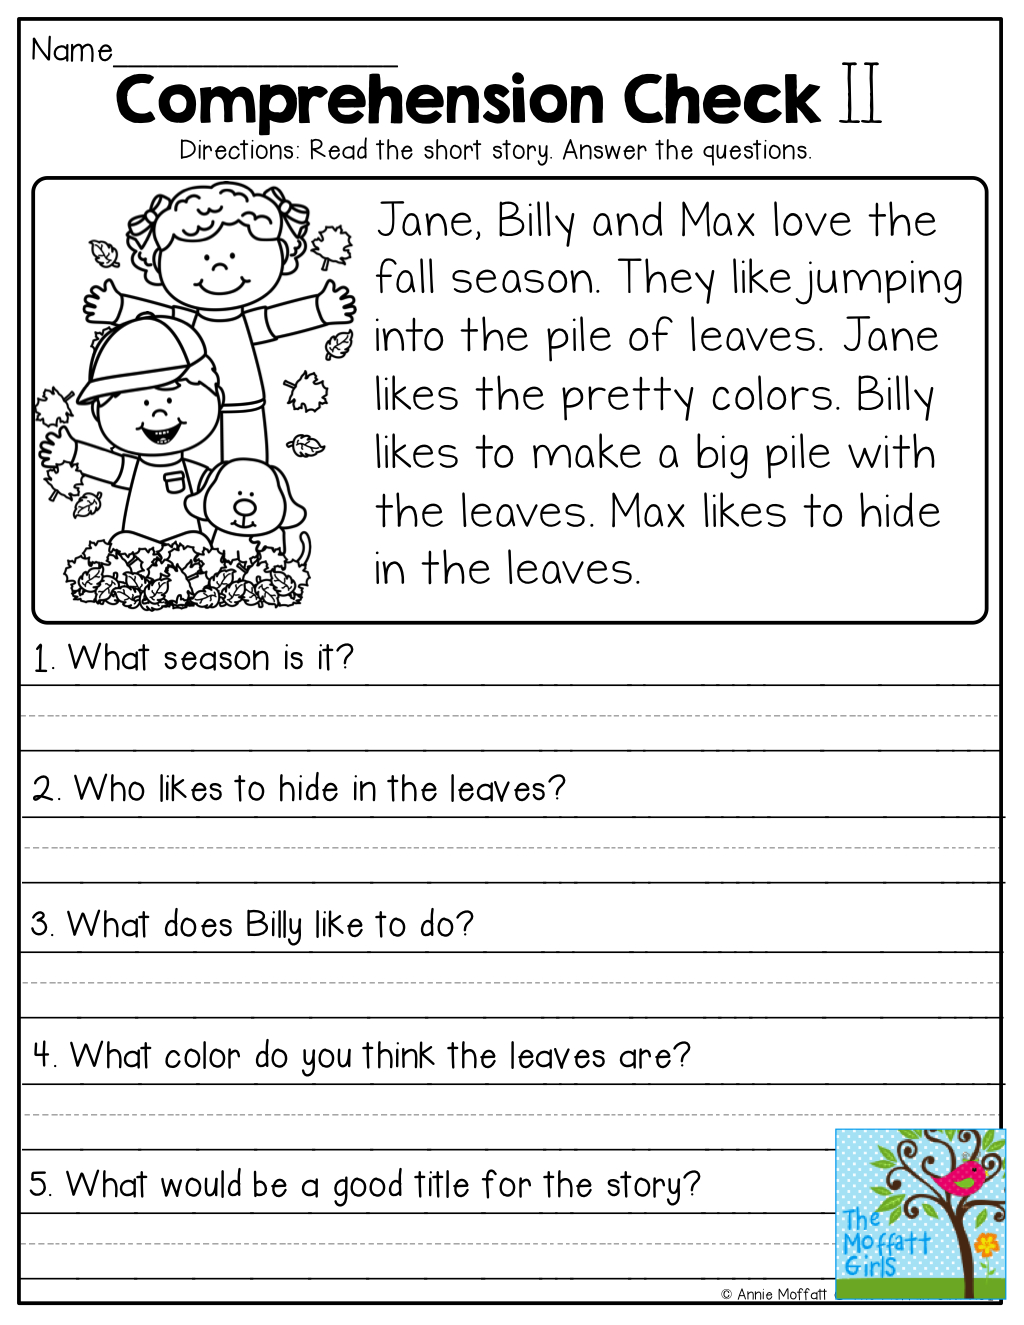 Comprehension Checks And So Many More Useful Printables! | Test Of - Free Printable Short Stories For 4Th Graders